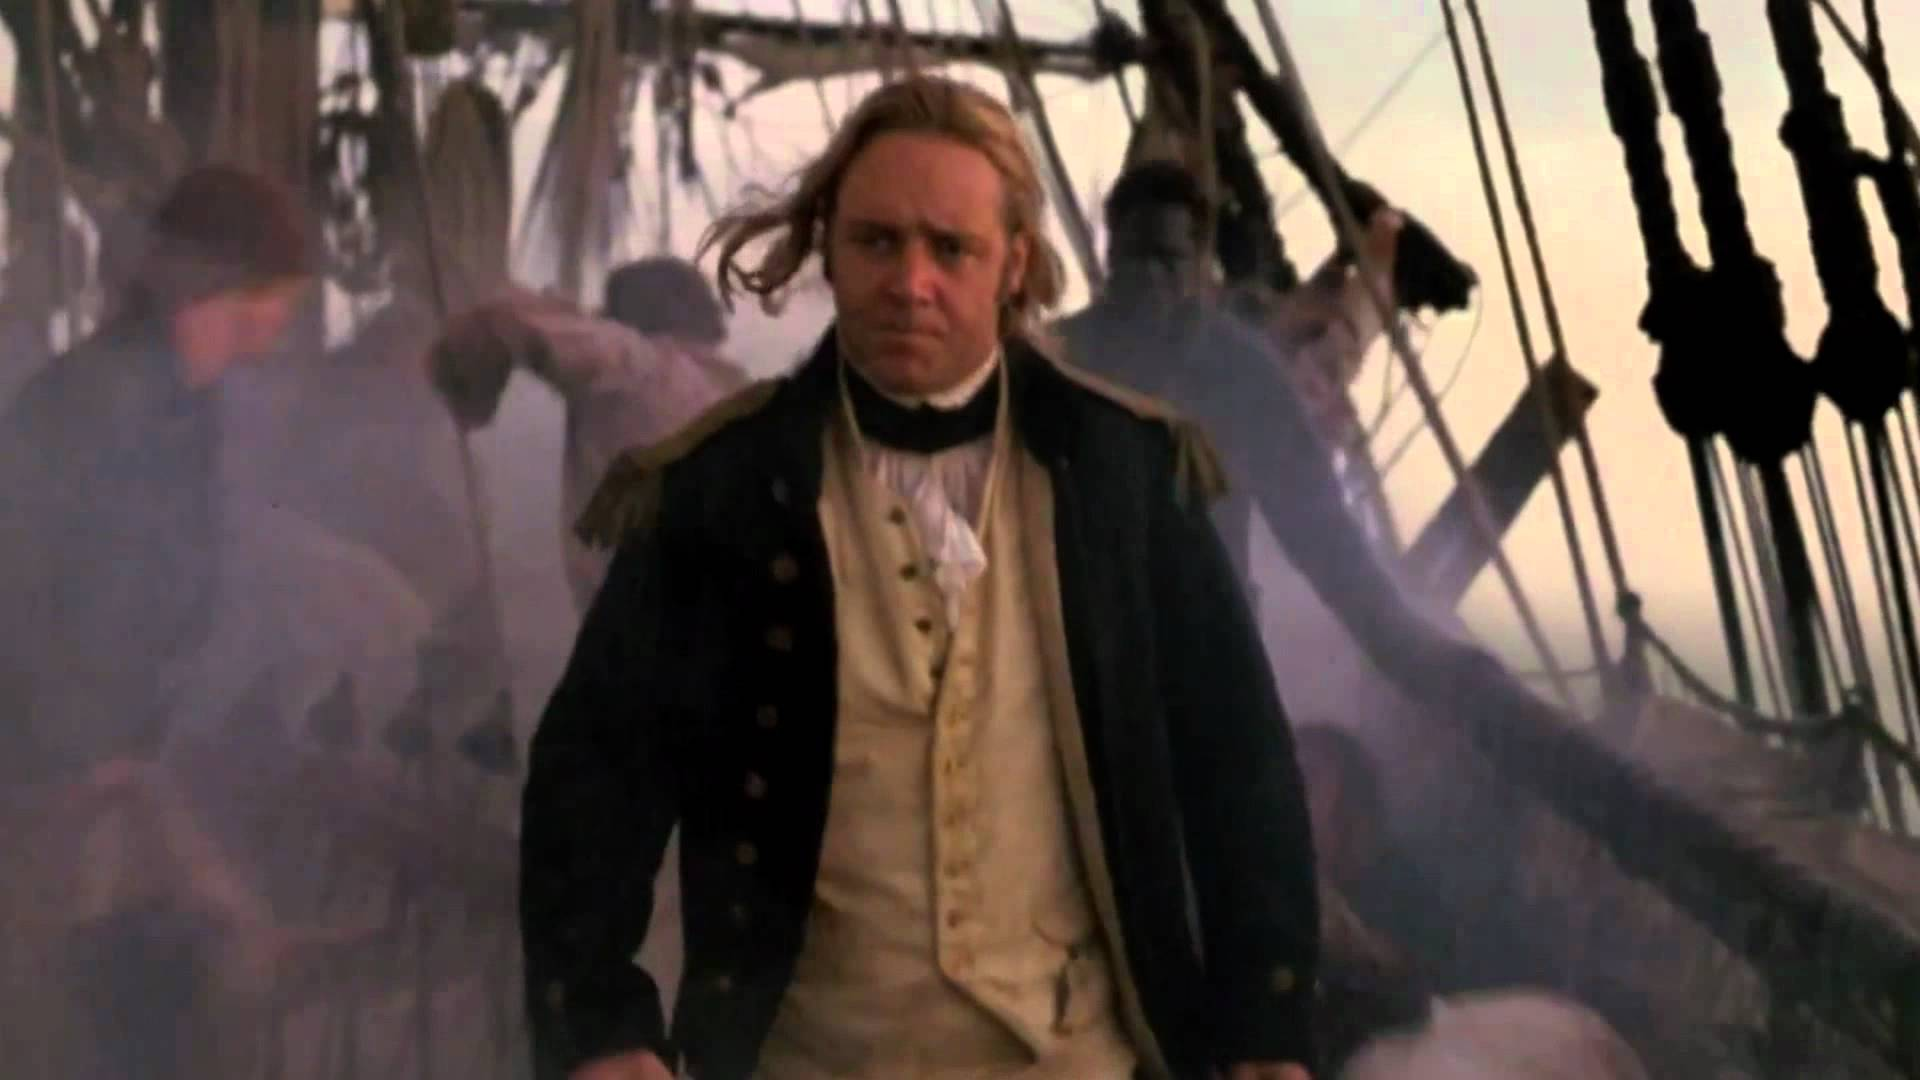 Russell Crowe Master and Commander Opening Scene